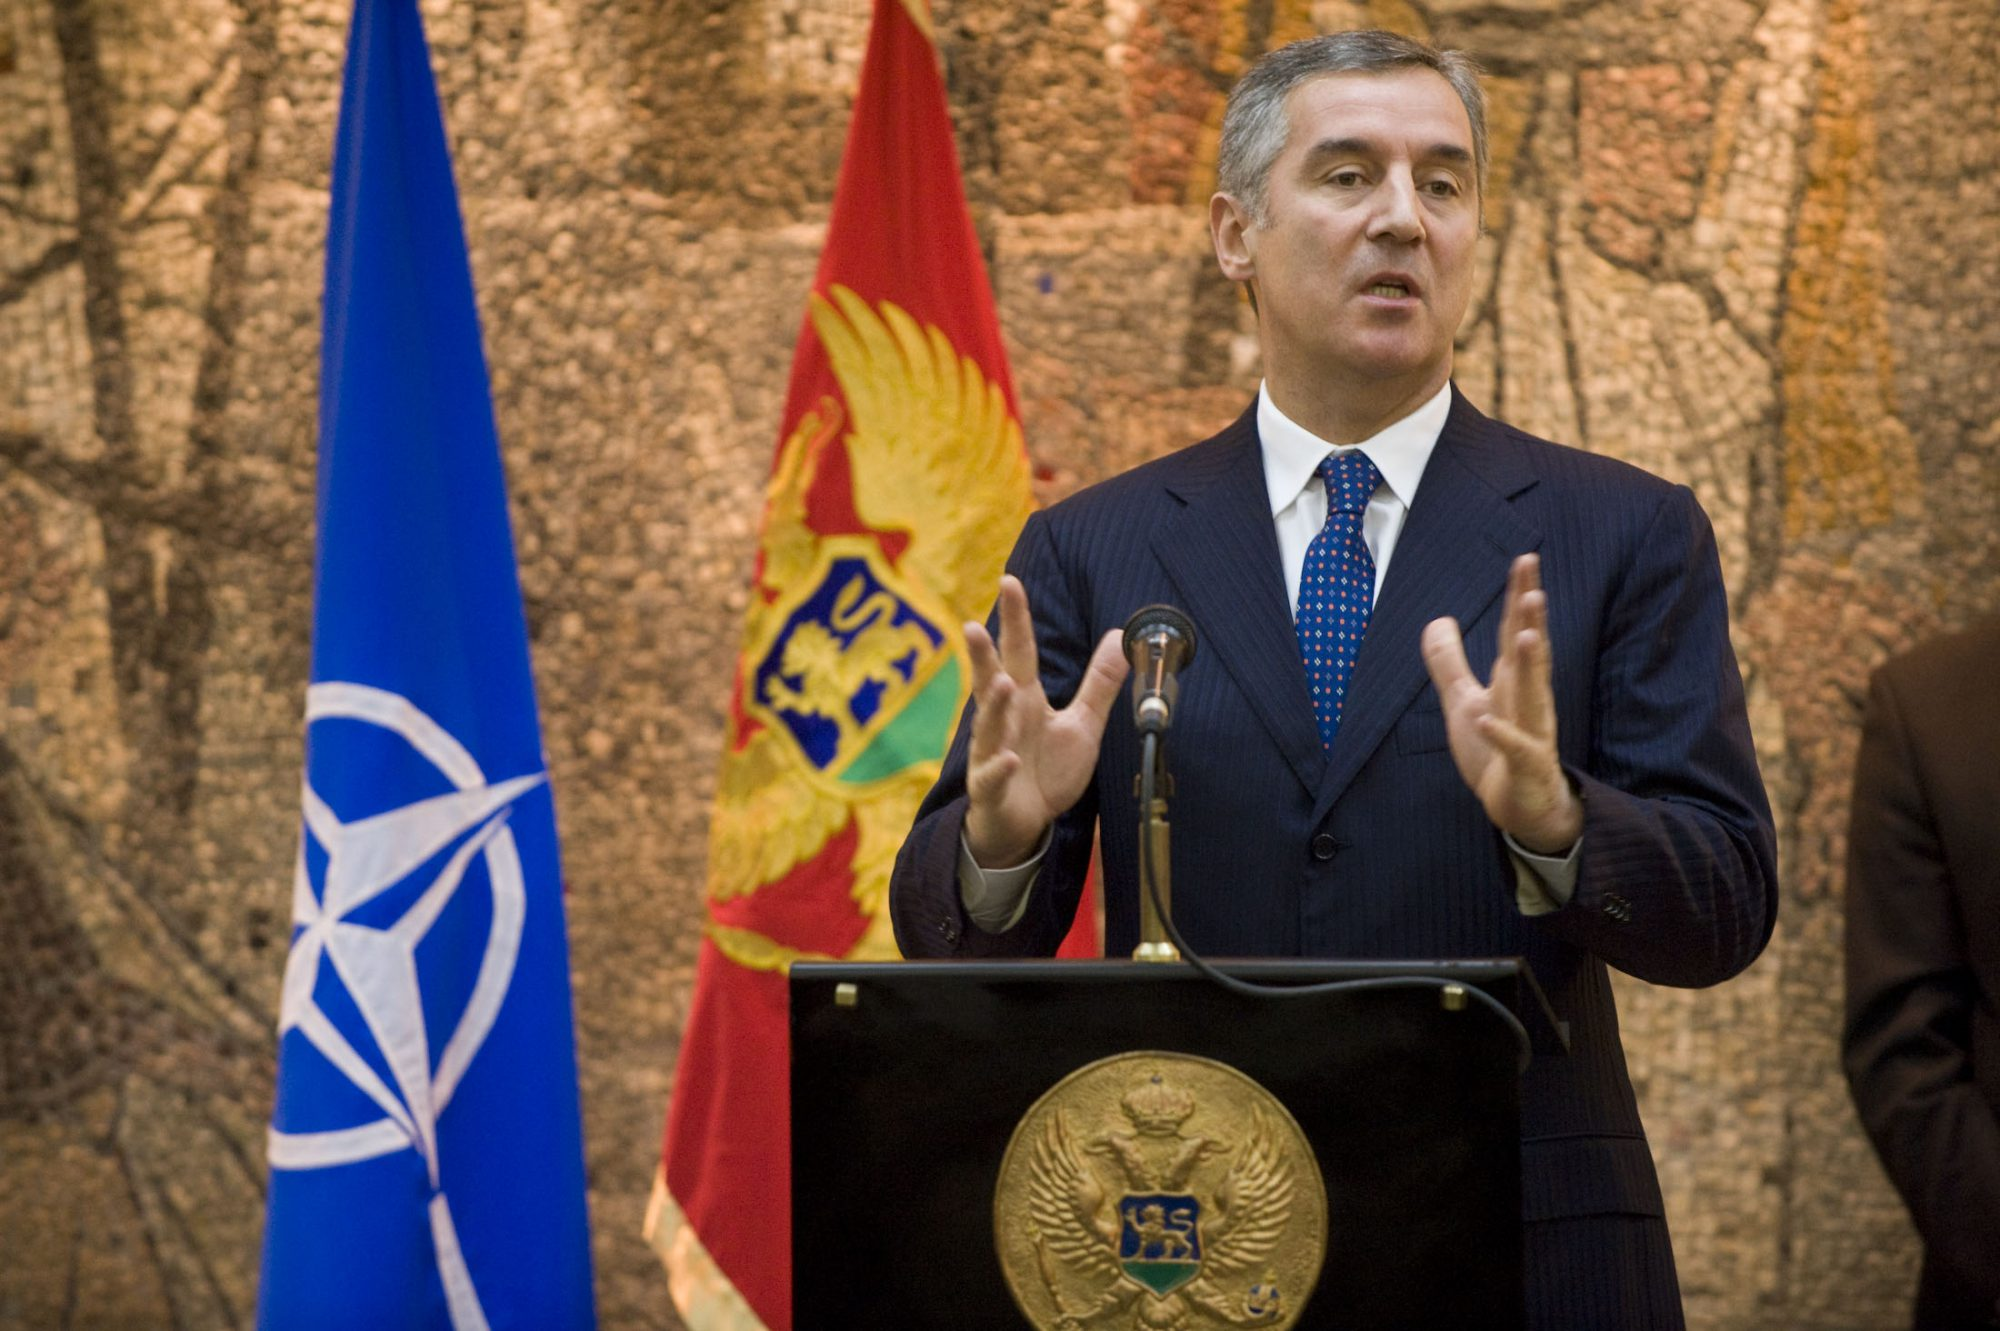 'Alo!' tabloid accuses Montenegro's Djukanovic of conspiracy against Serbia's Vucic